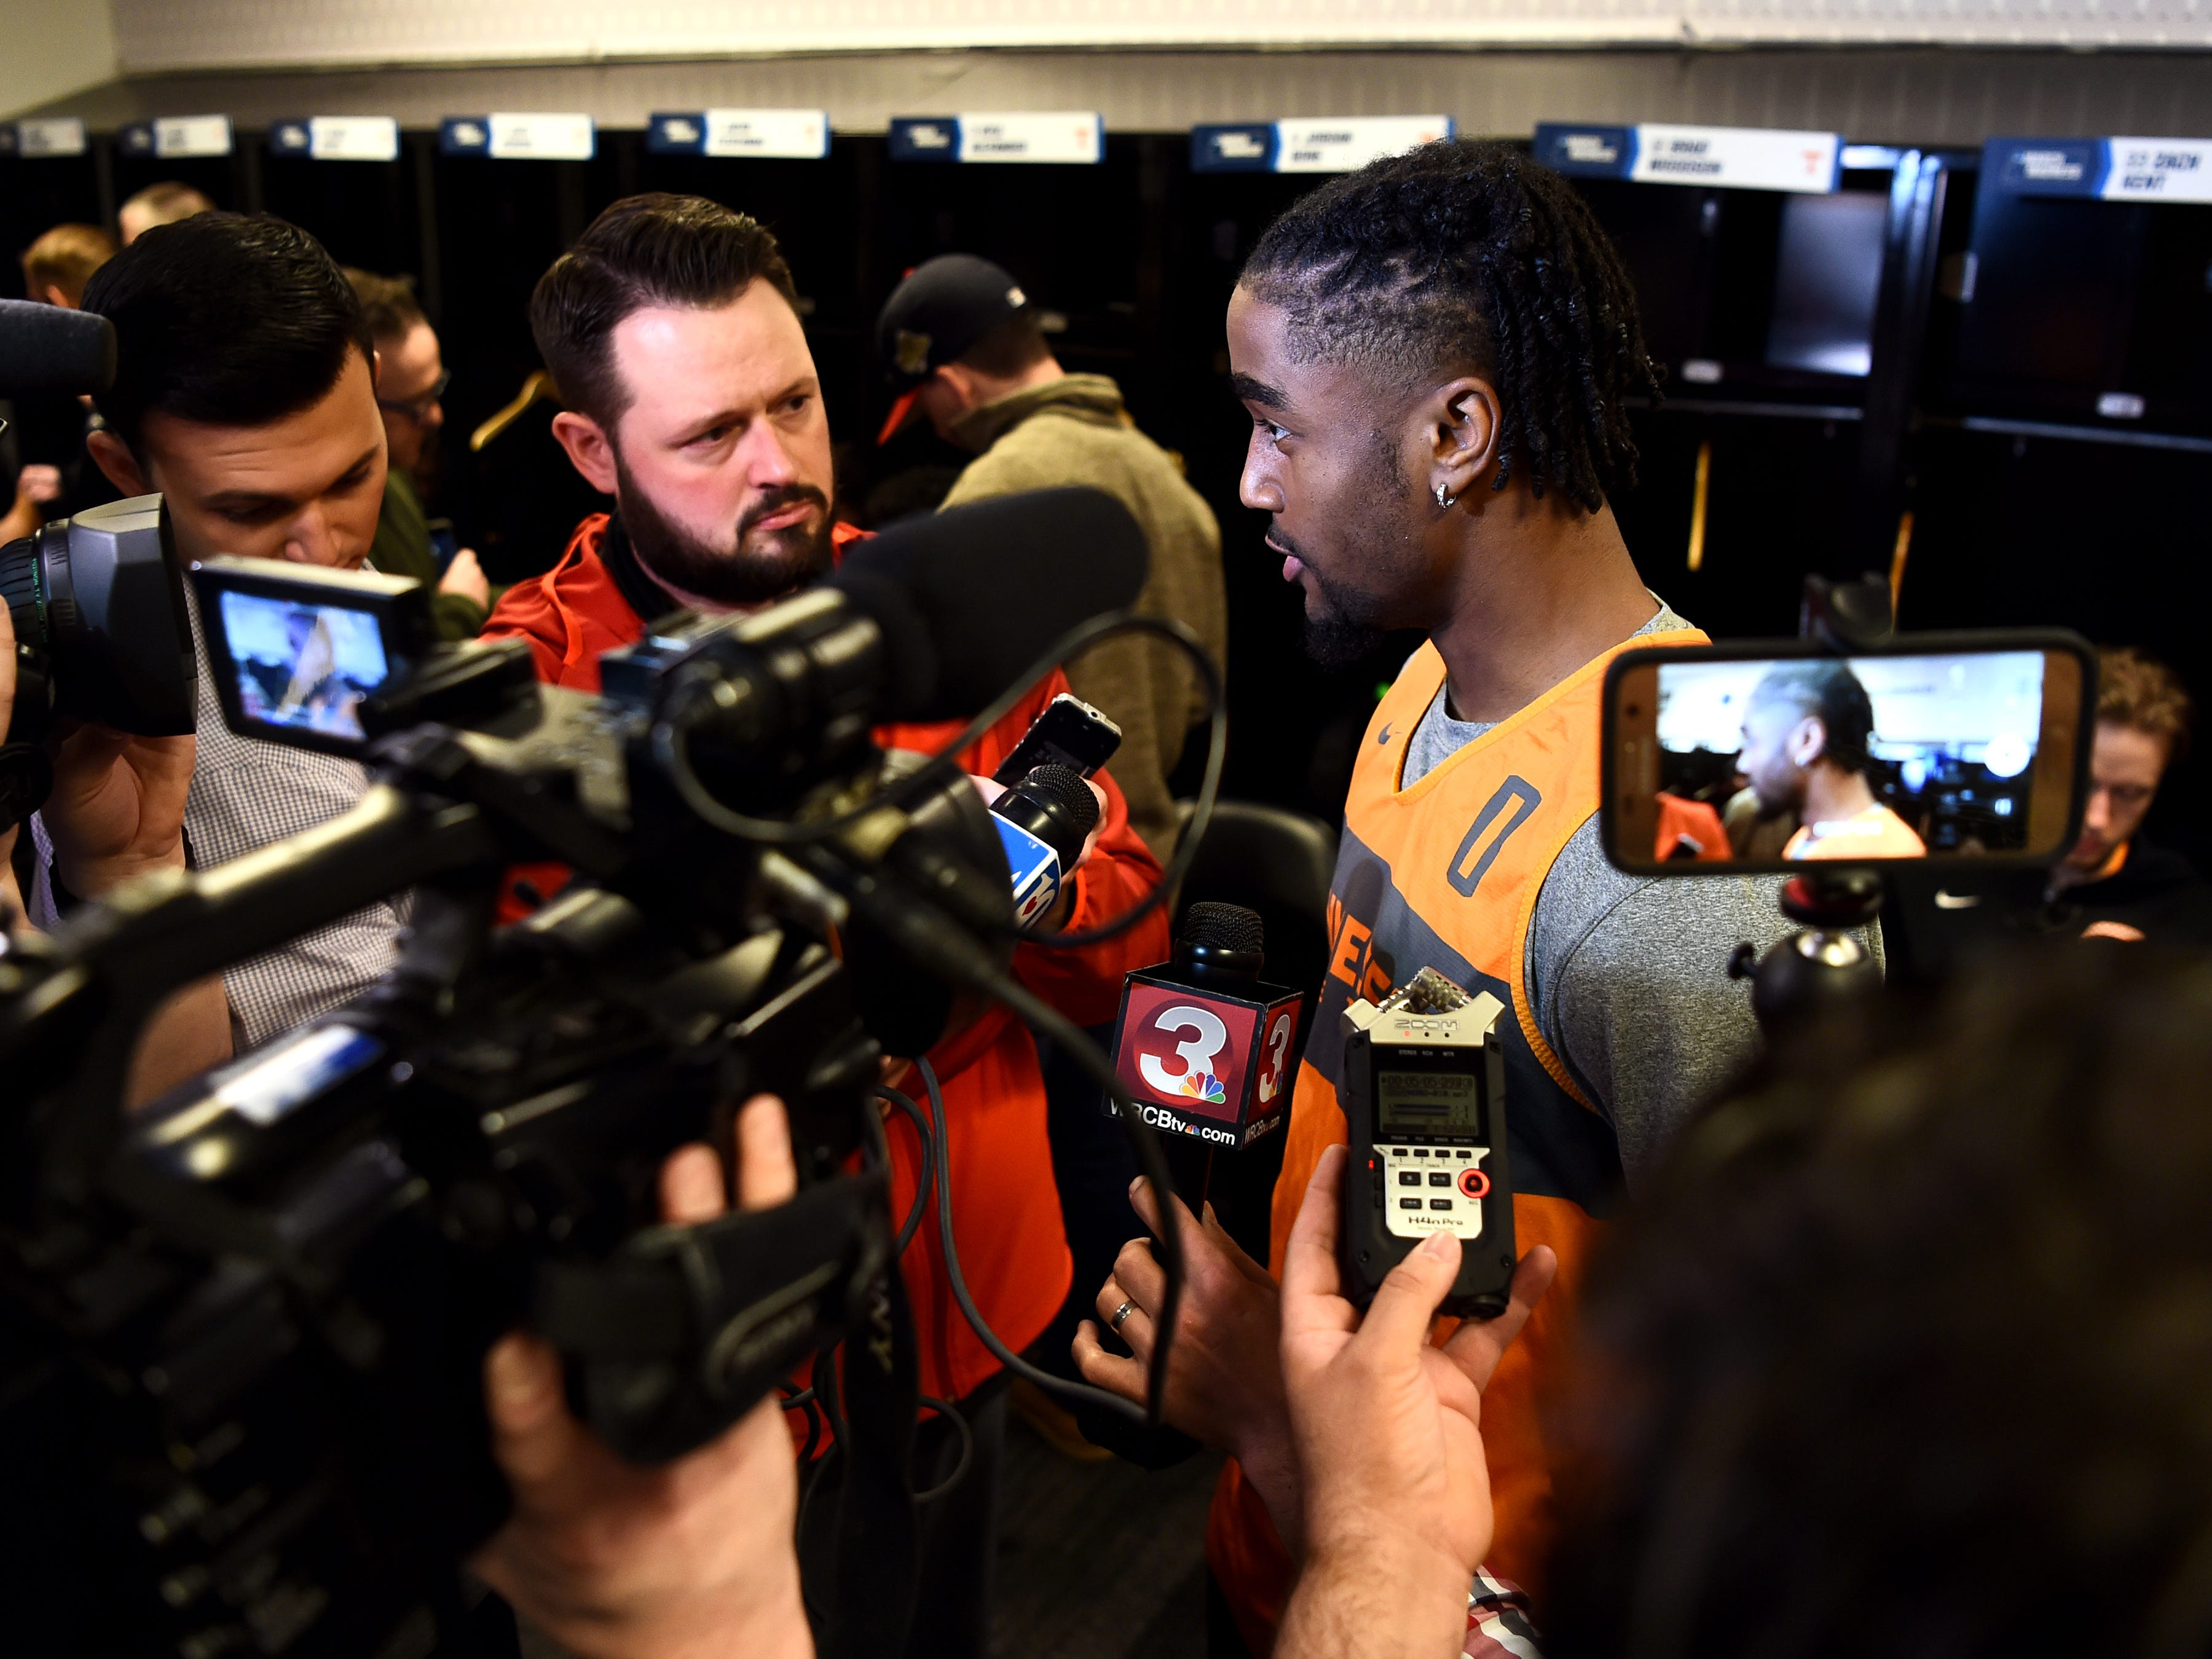 Tennessee guard Jordan Bone (0) speaks with members of the media on Saturday, March 23, 2019, before the Tennessee Volunteers and Iowa Hawkeyes compete against one another in the second round of the NCAA Tournament held at Nationwide Arena in Columbus, Ohio, on Sunday, March 24, 2019.